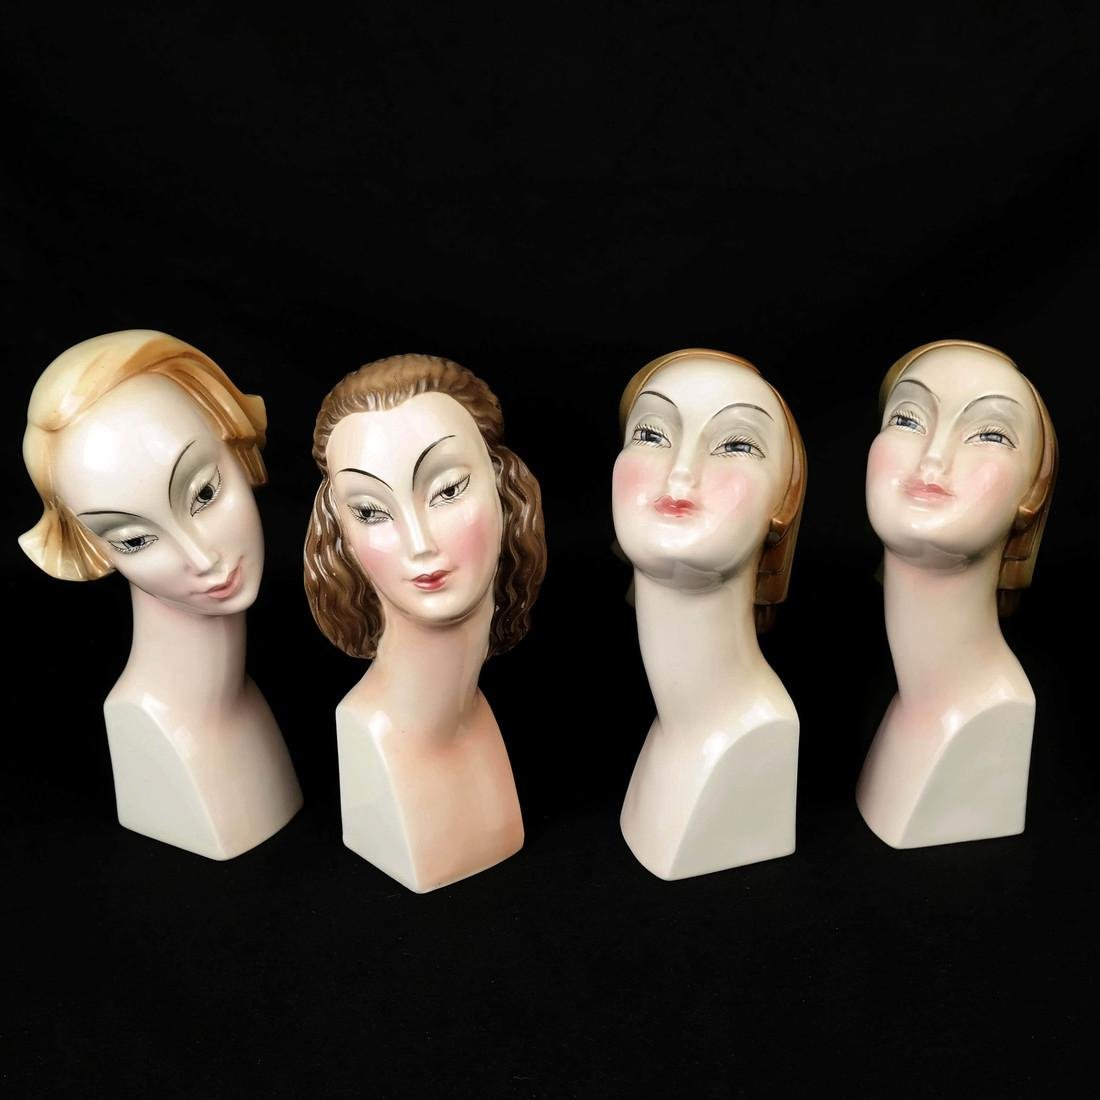 Four Art Deco Style HERTWIG German Female Busts